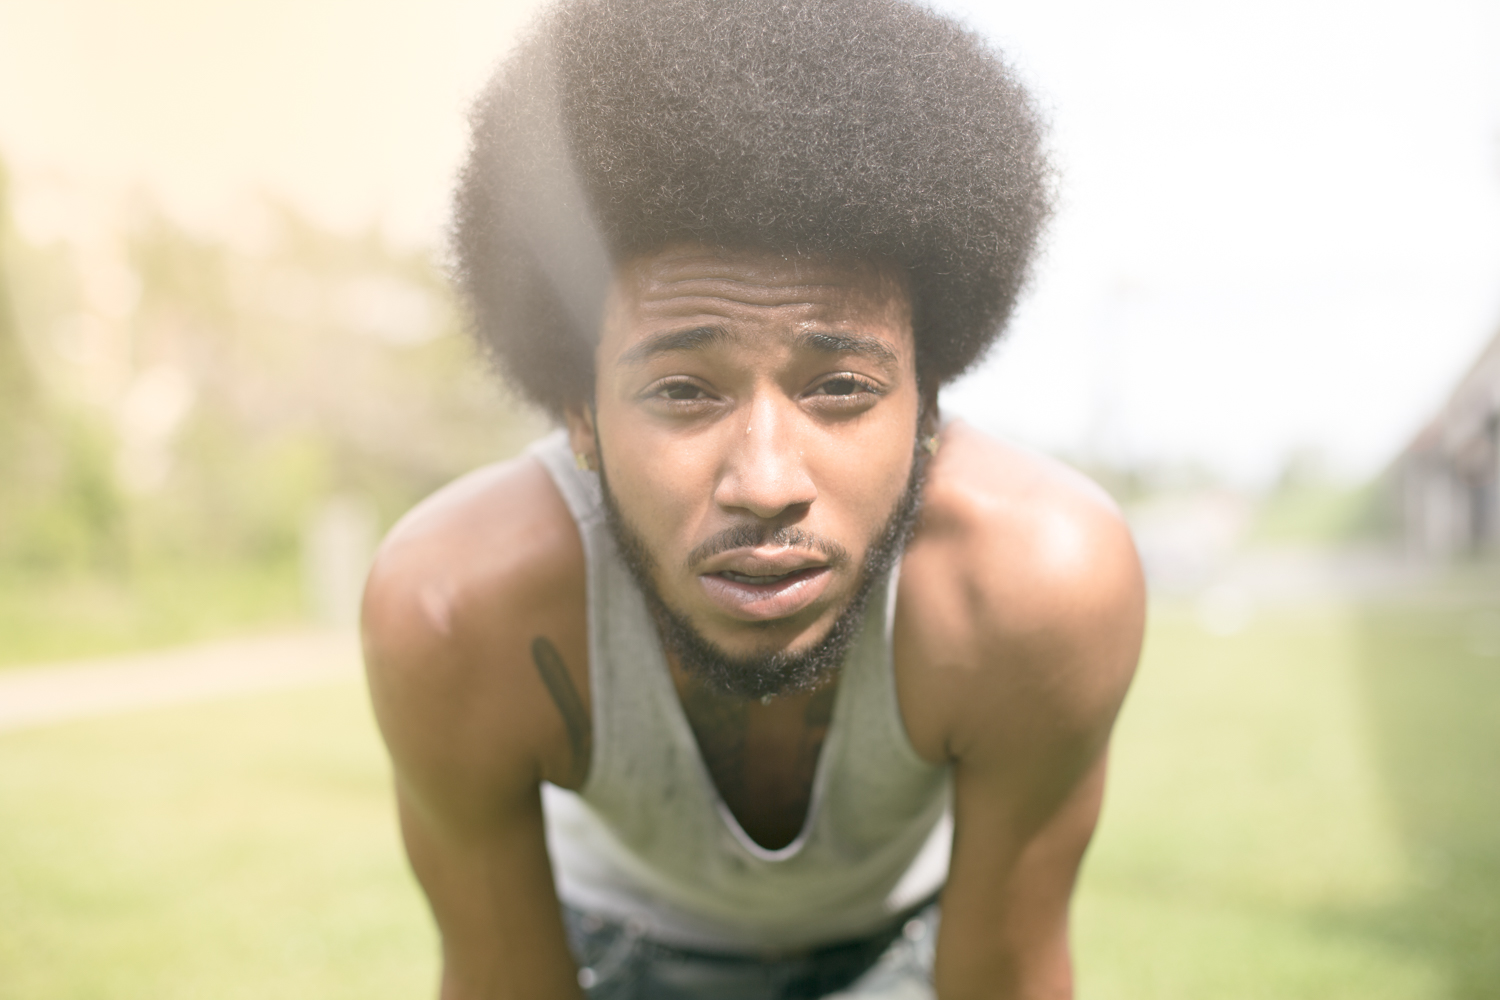 man-with-an-afro